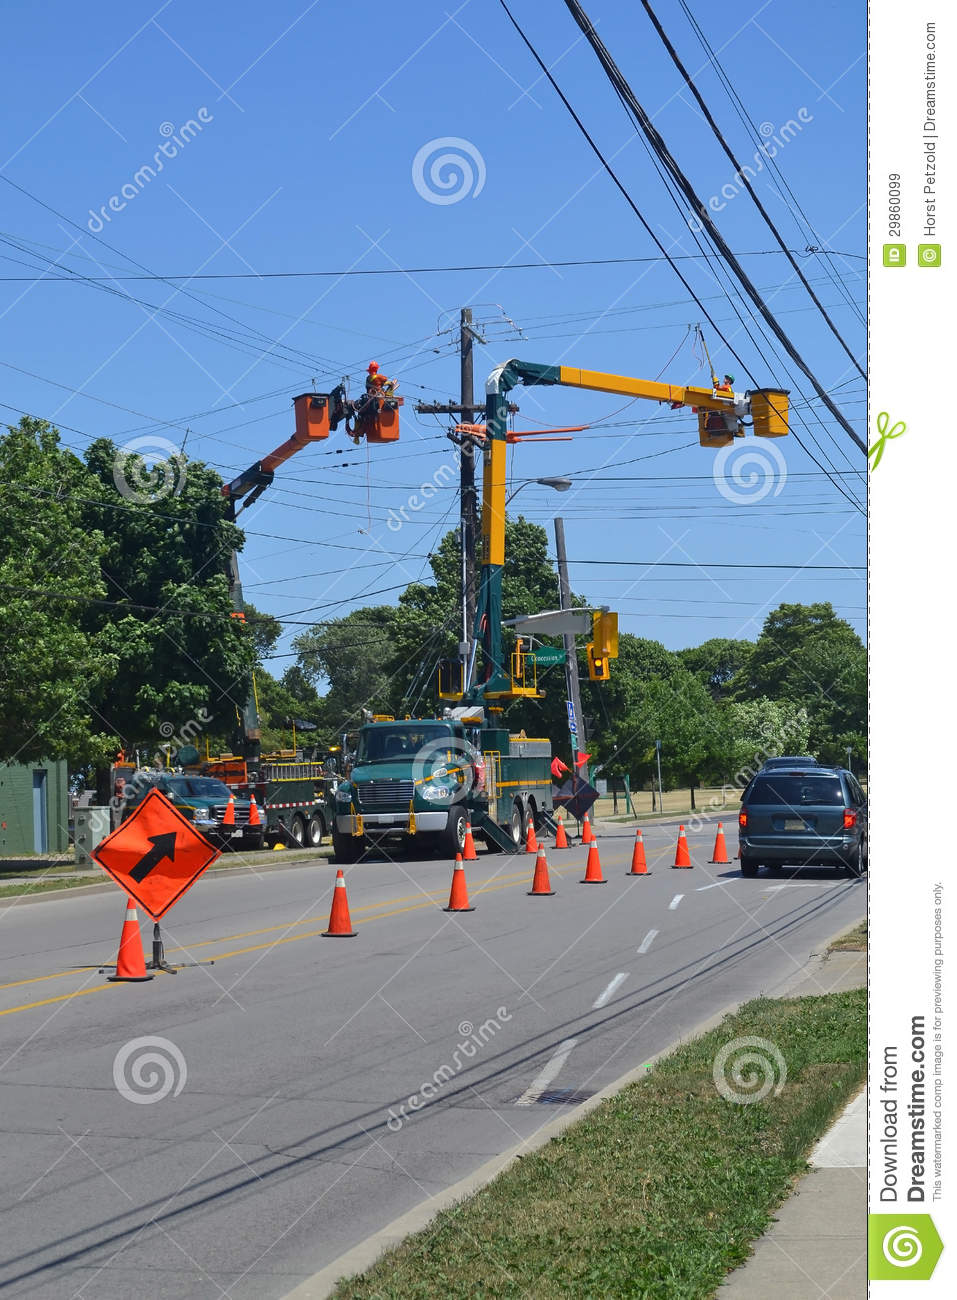 Hydro work  stock image  Image of harness, industrial - 29860099